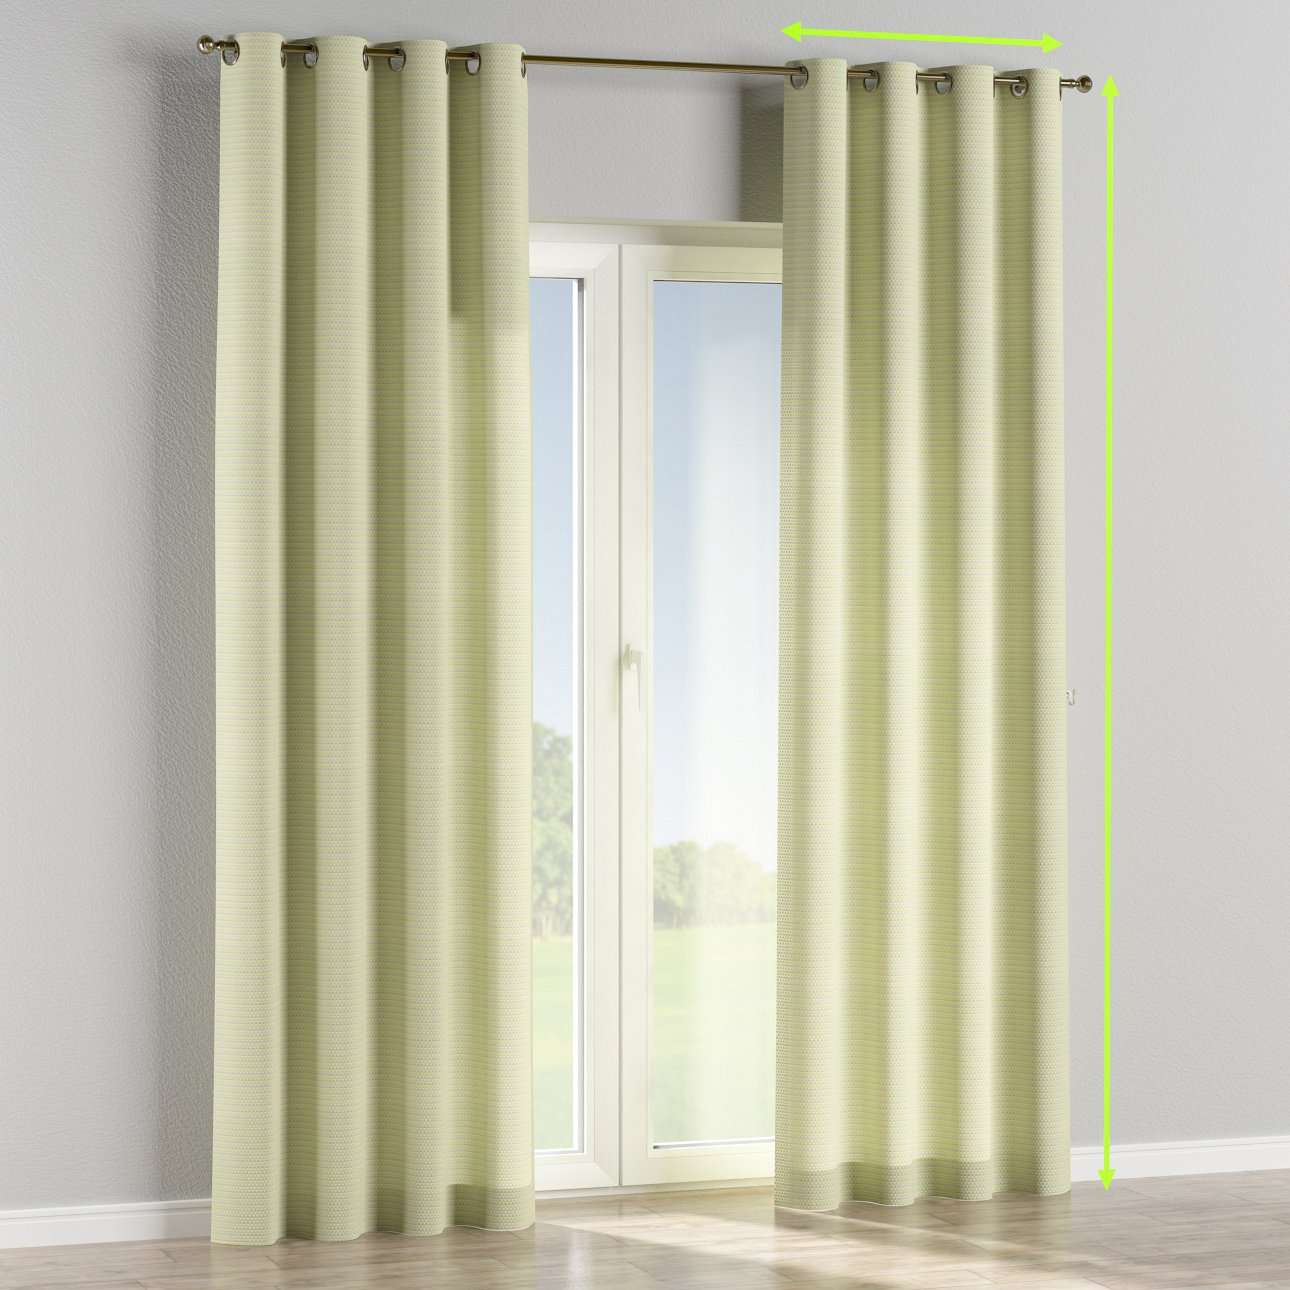 Eyelet lined curtains in collection Rustica, fabric: 140-34